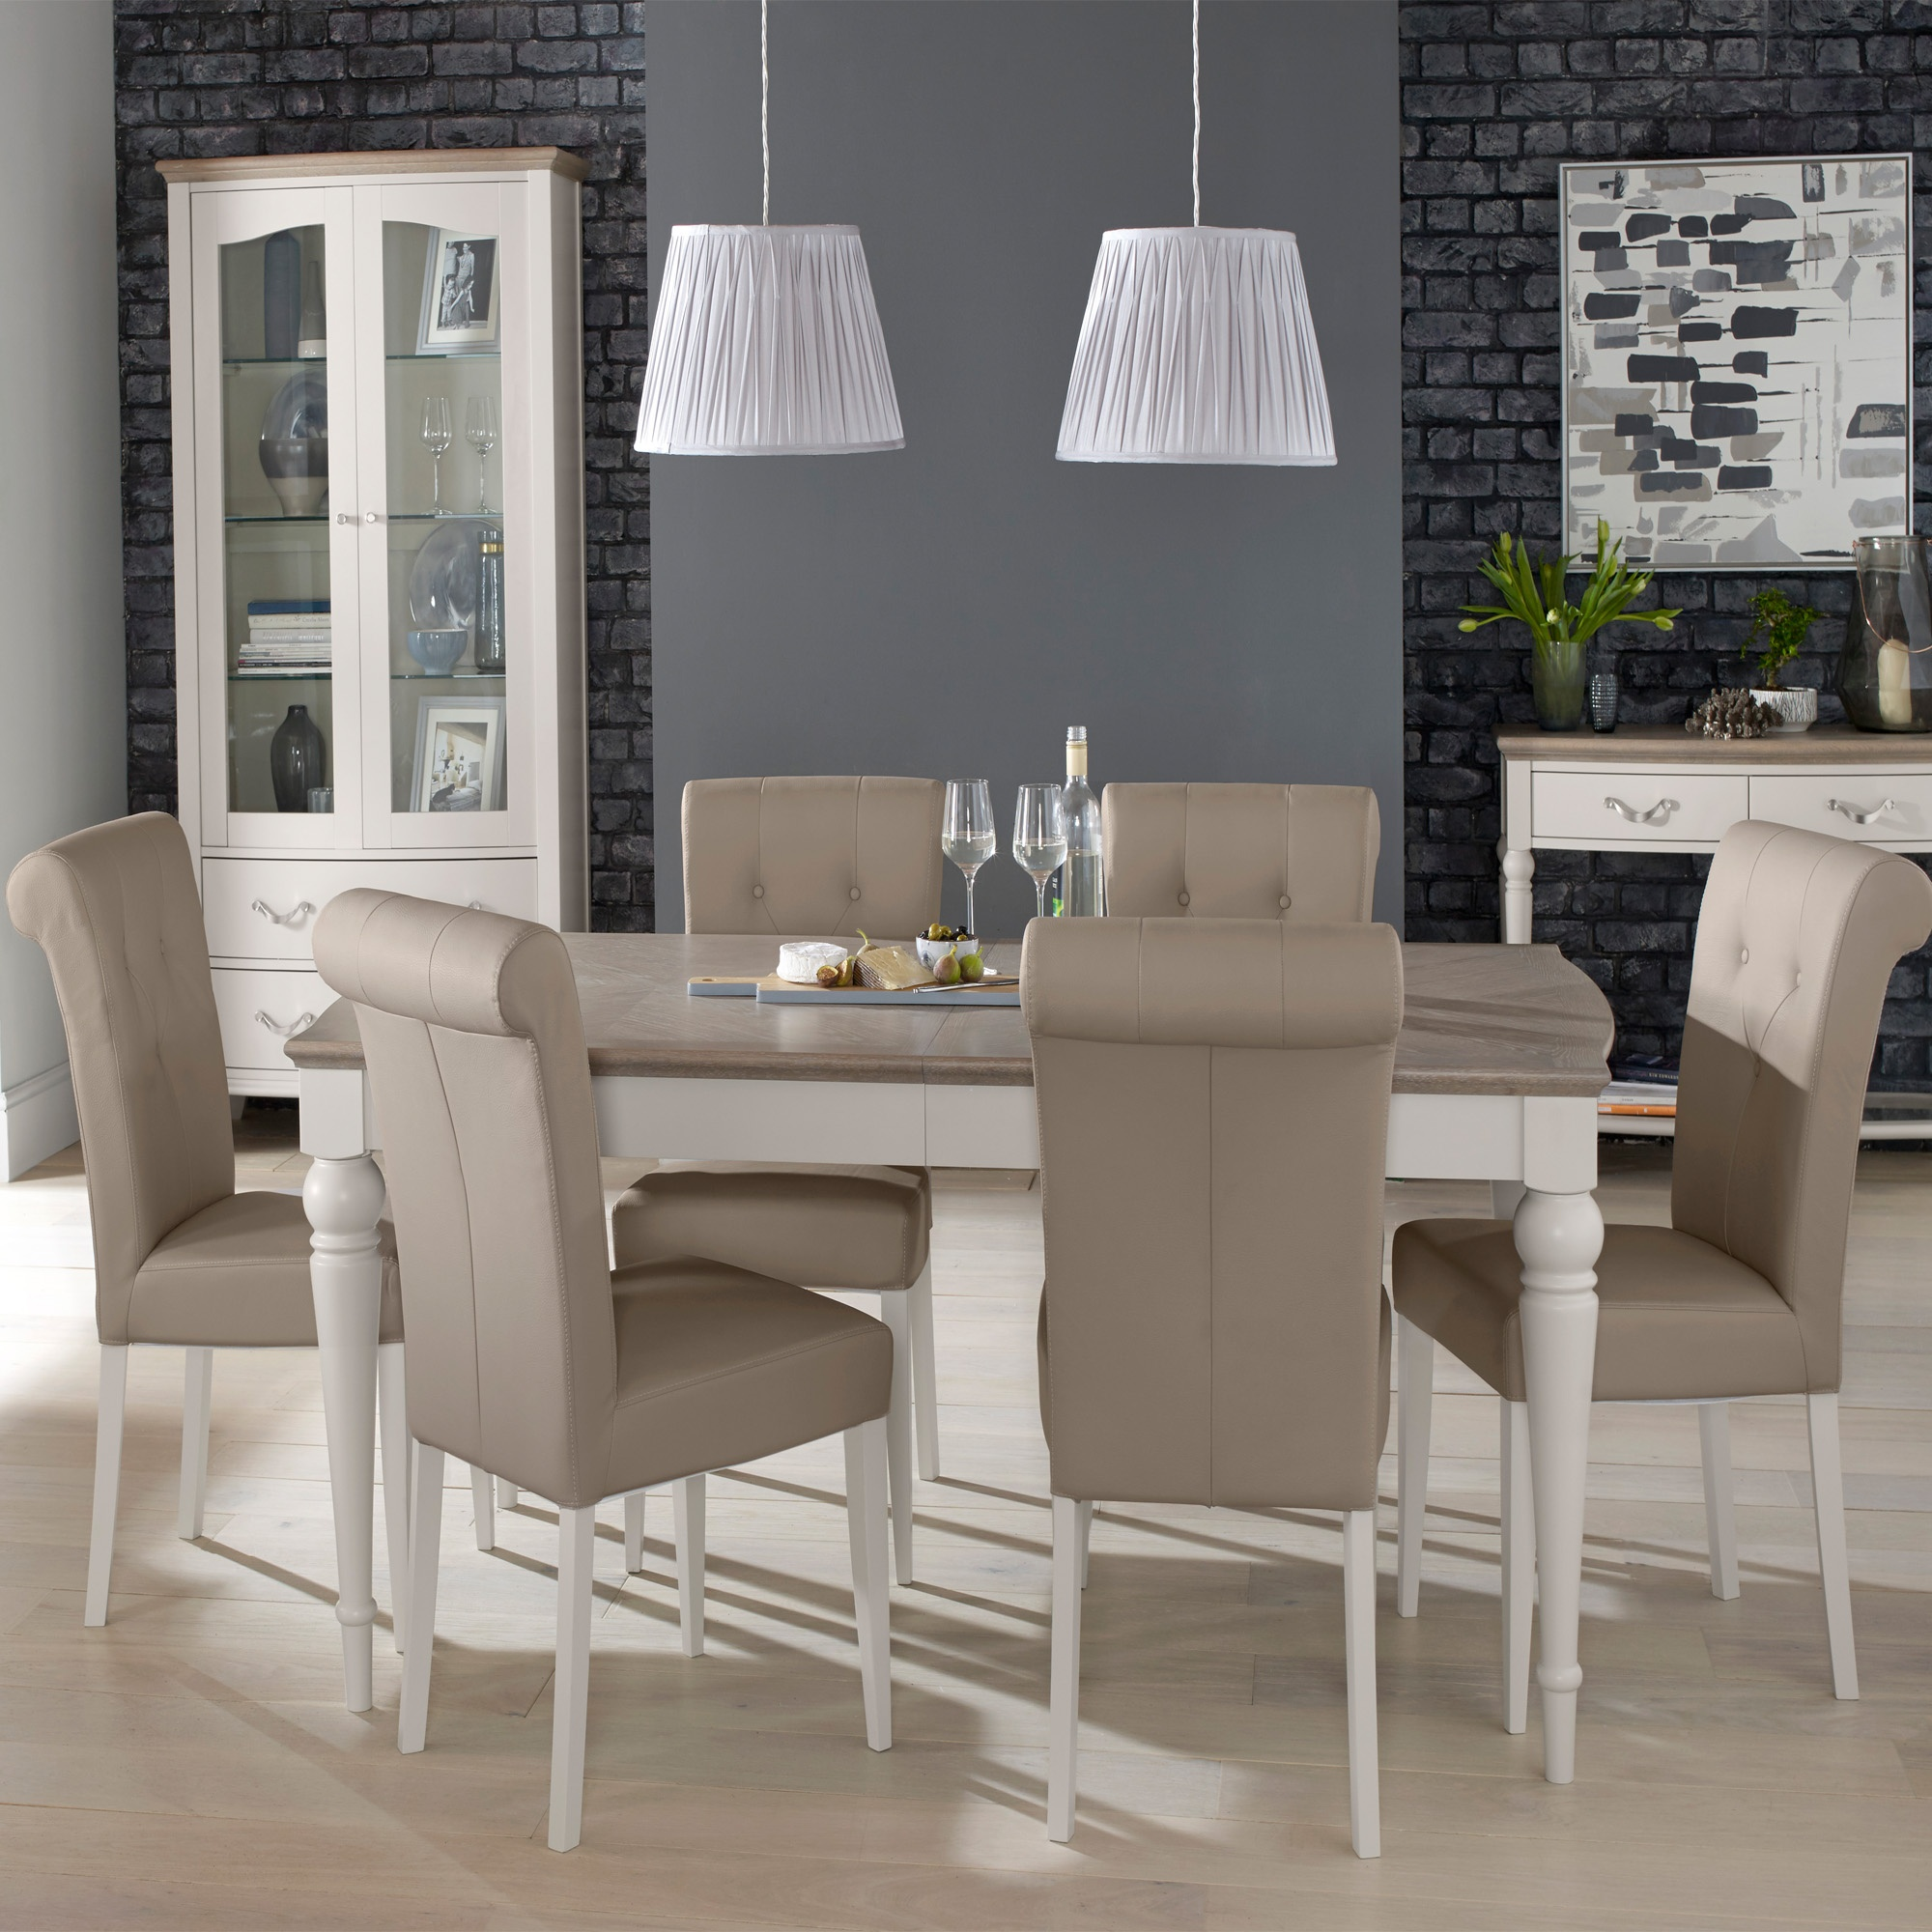 new of and with ideas chair photos chairs dining in table design luxury sets